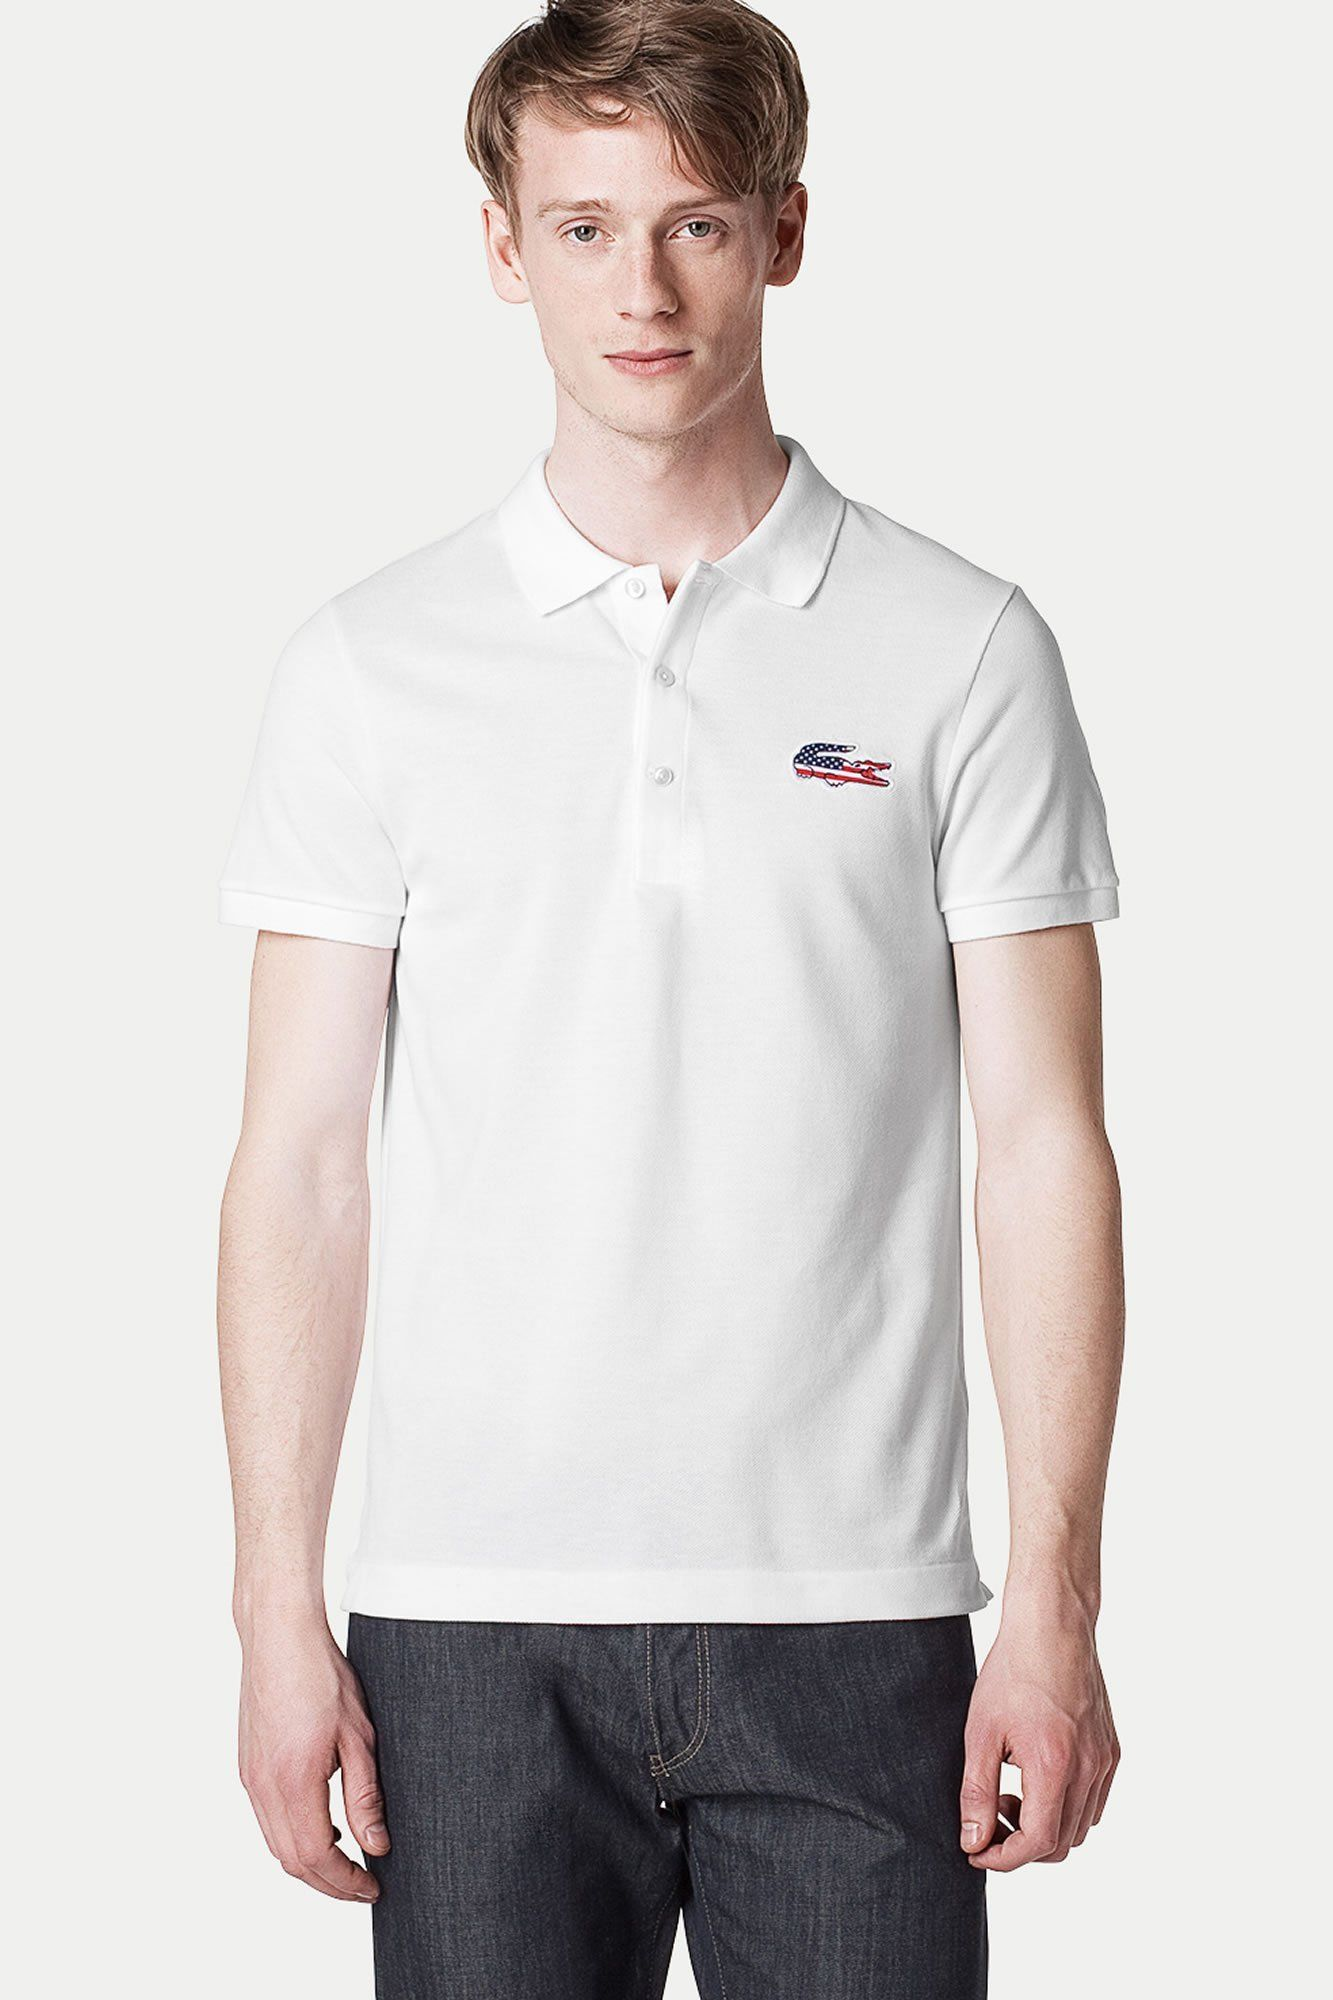 820e3264dd9 Lacoste T Shirts Online Usa - BCD Tofu House